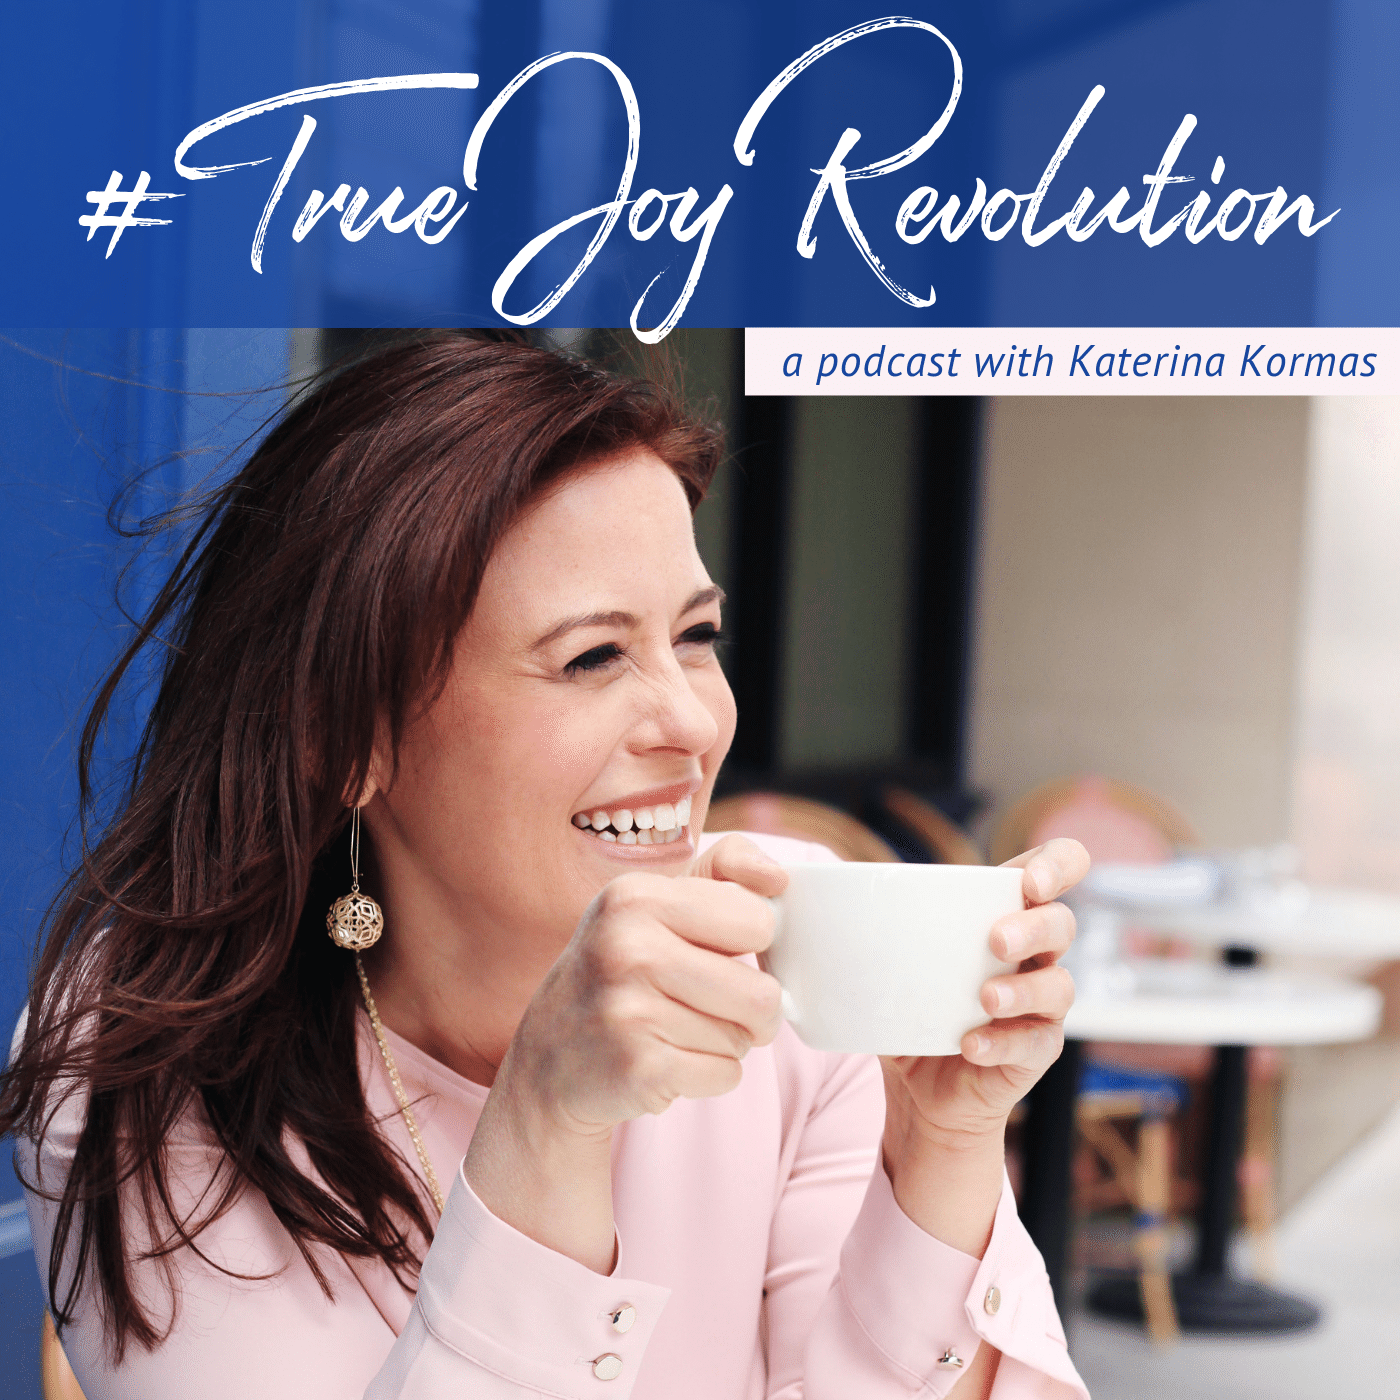 Episode #008: What is #TrueJoyRevolution All About? show art